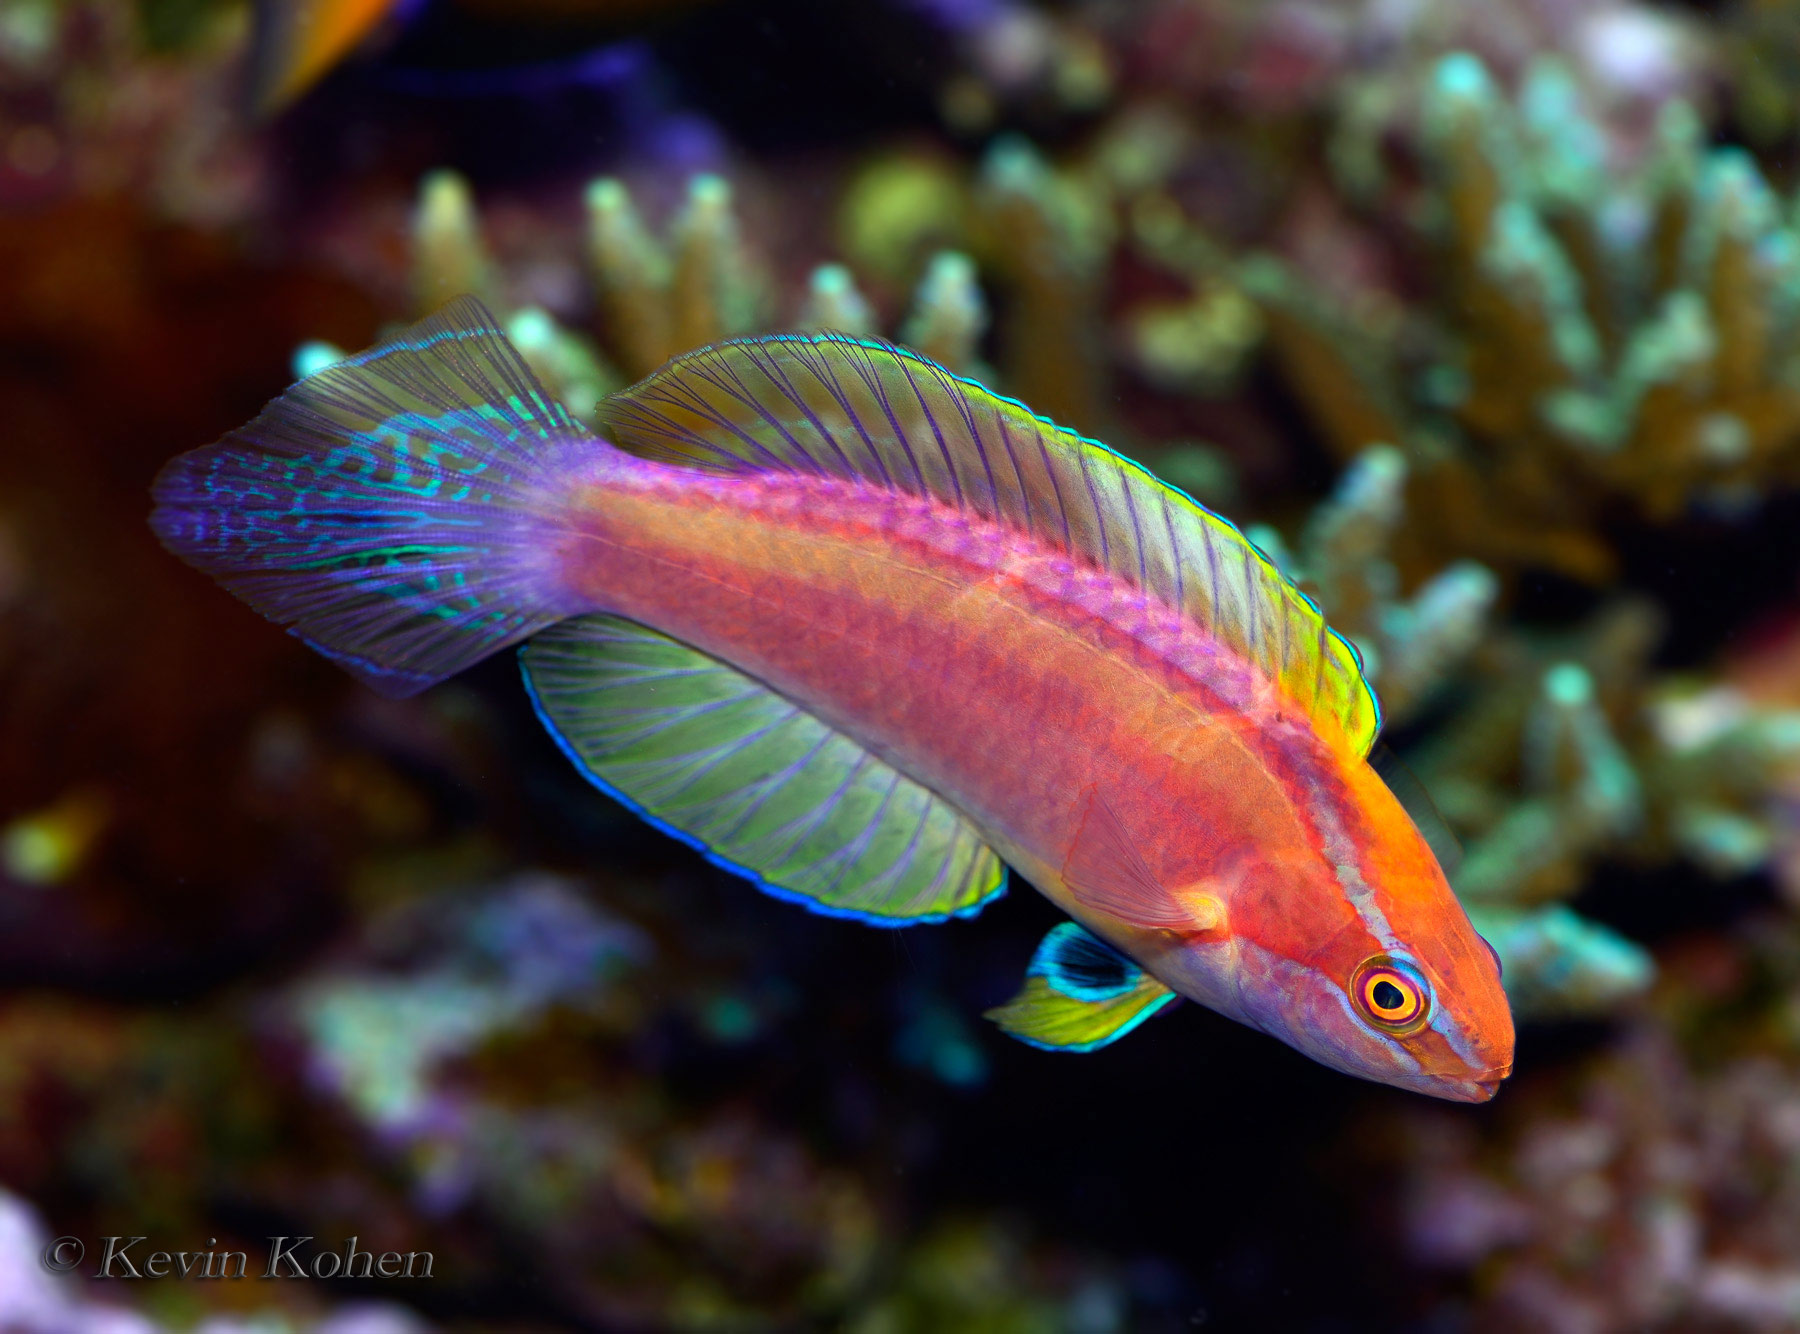 Rose Band Fairy Wrasse Male (Cirrhilabrus roseafascia)